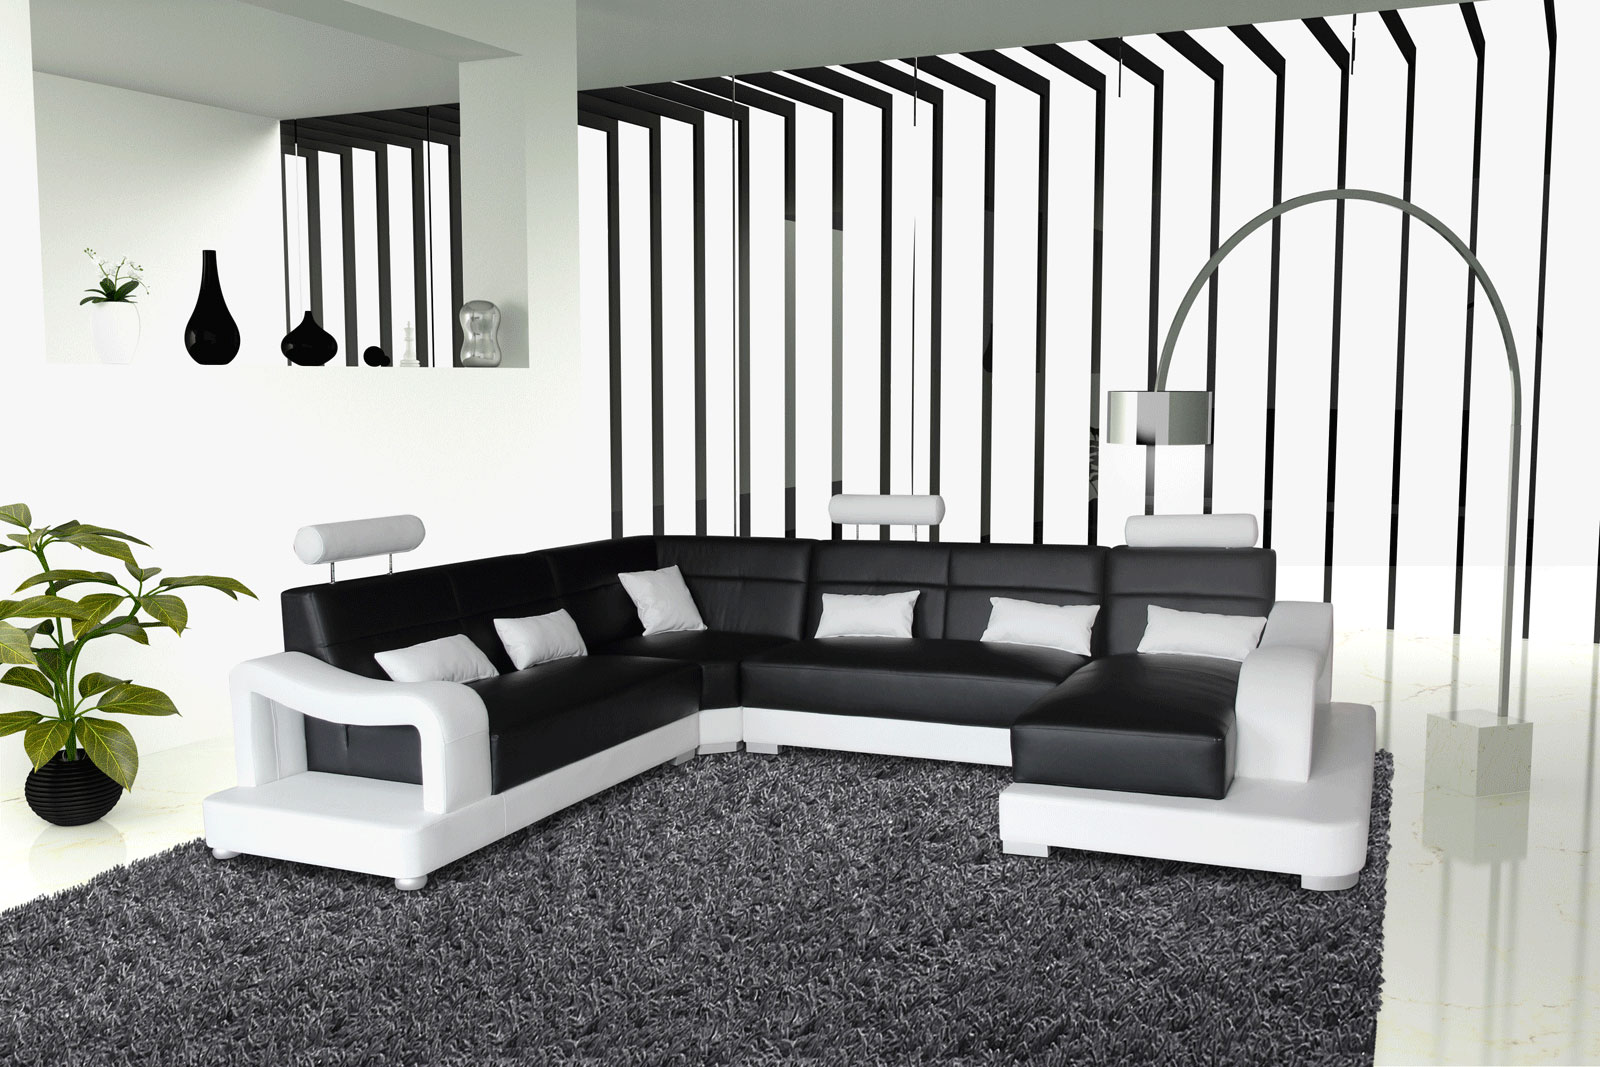 sam sofa schwarz wei wohnlandschaft ariola 243 x 392 x 181 cm. Black Bedroom Furniture Sets. Home Design Ideas